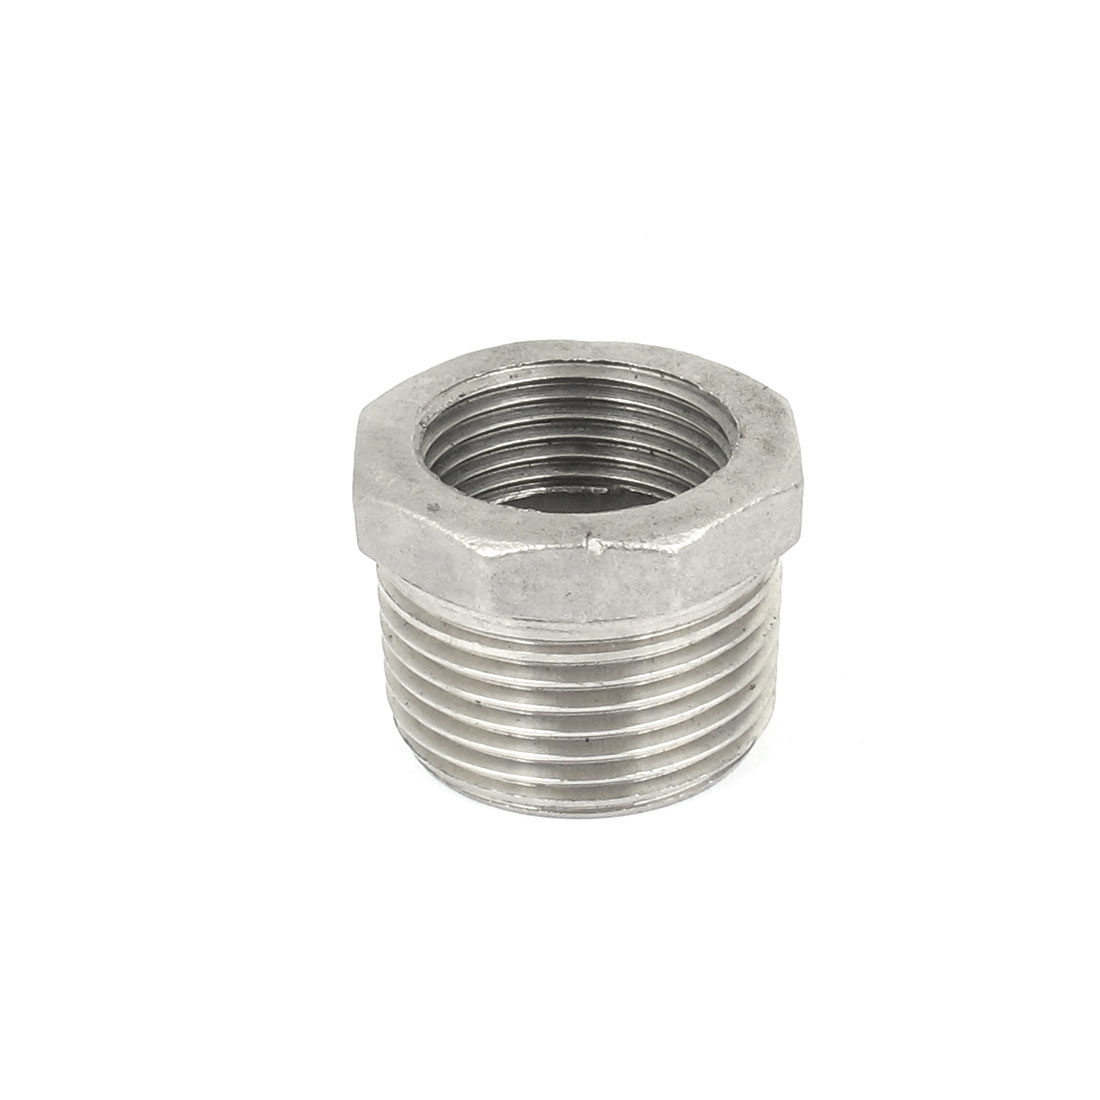 1 BSP Male to 3/4 BSP Female Thread Octagon Head Bushing Fitting for Pipeline